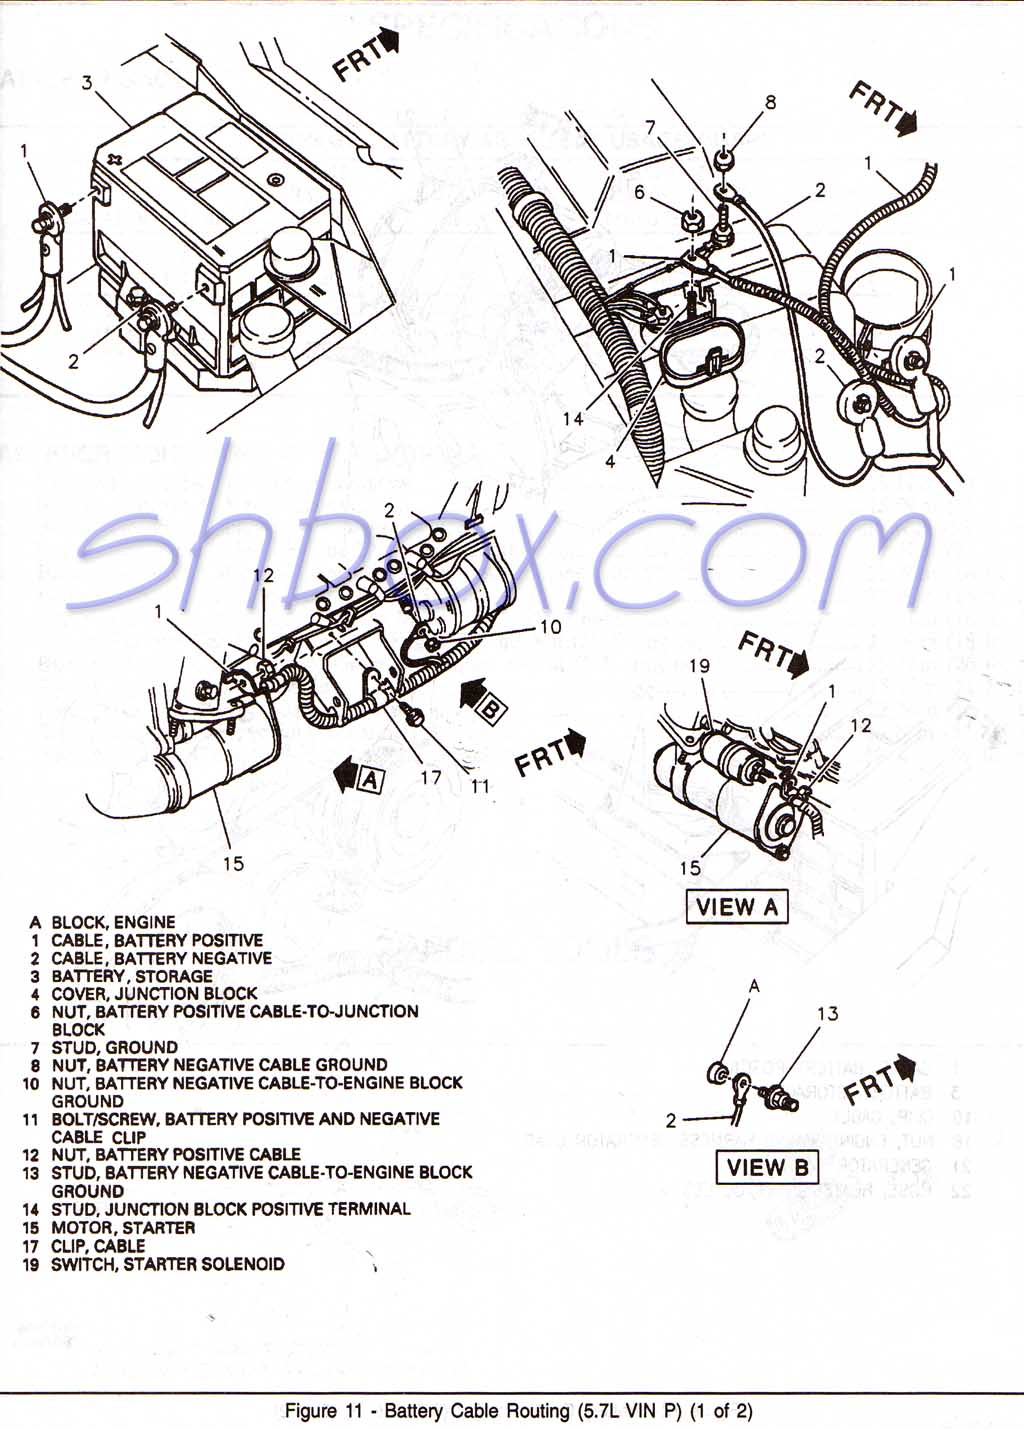 hight resolution of 1996 honda civic dx into 1996 honda civic ex wiring harness is different car idles